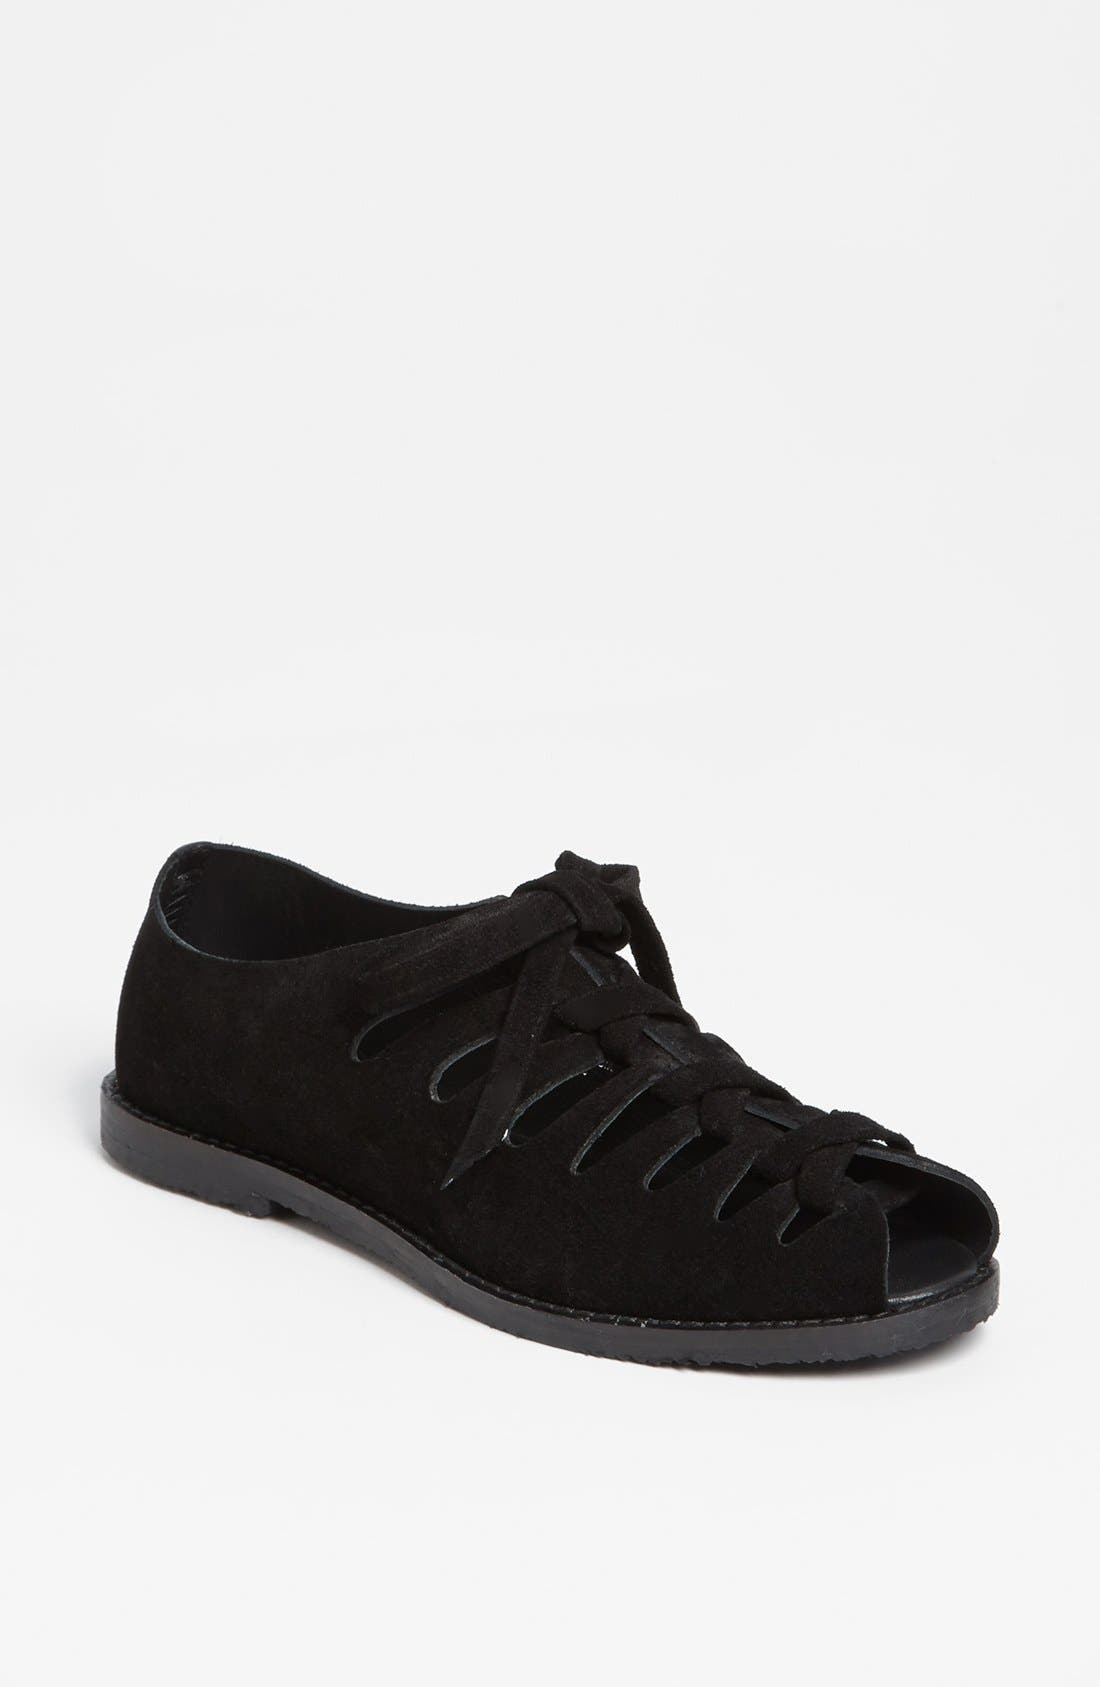 Main Image - Topshop 'Keep' Flat